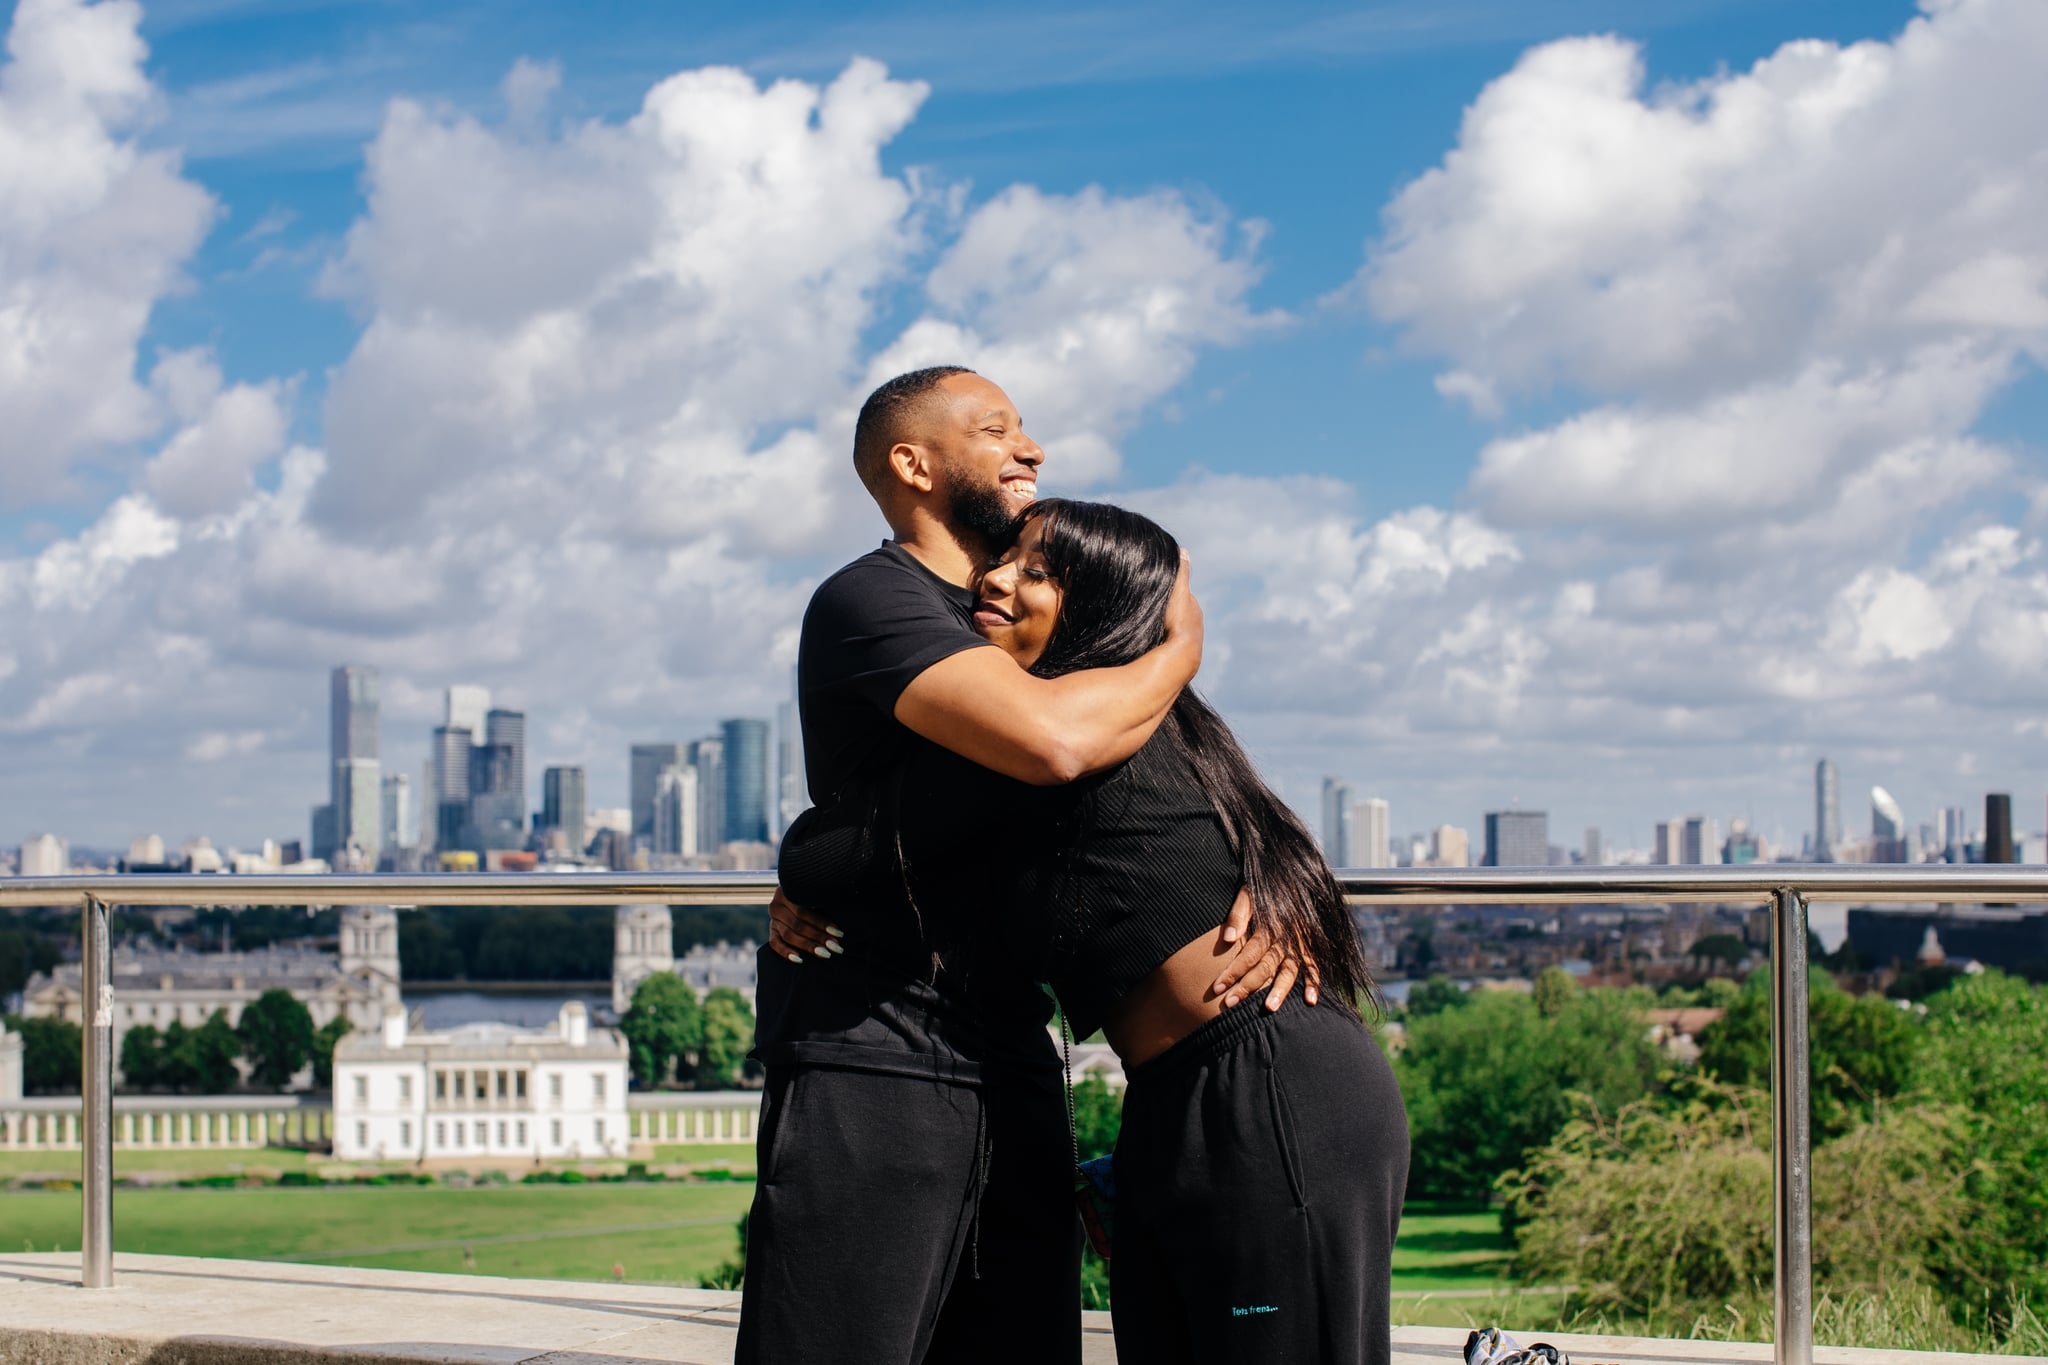 Highlife S1, Ep1 Kamille and Tomi head to the Royal Observatory for a date